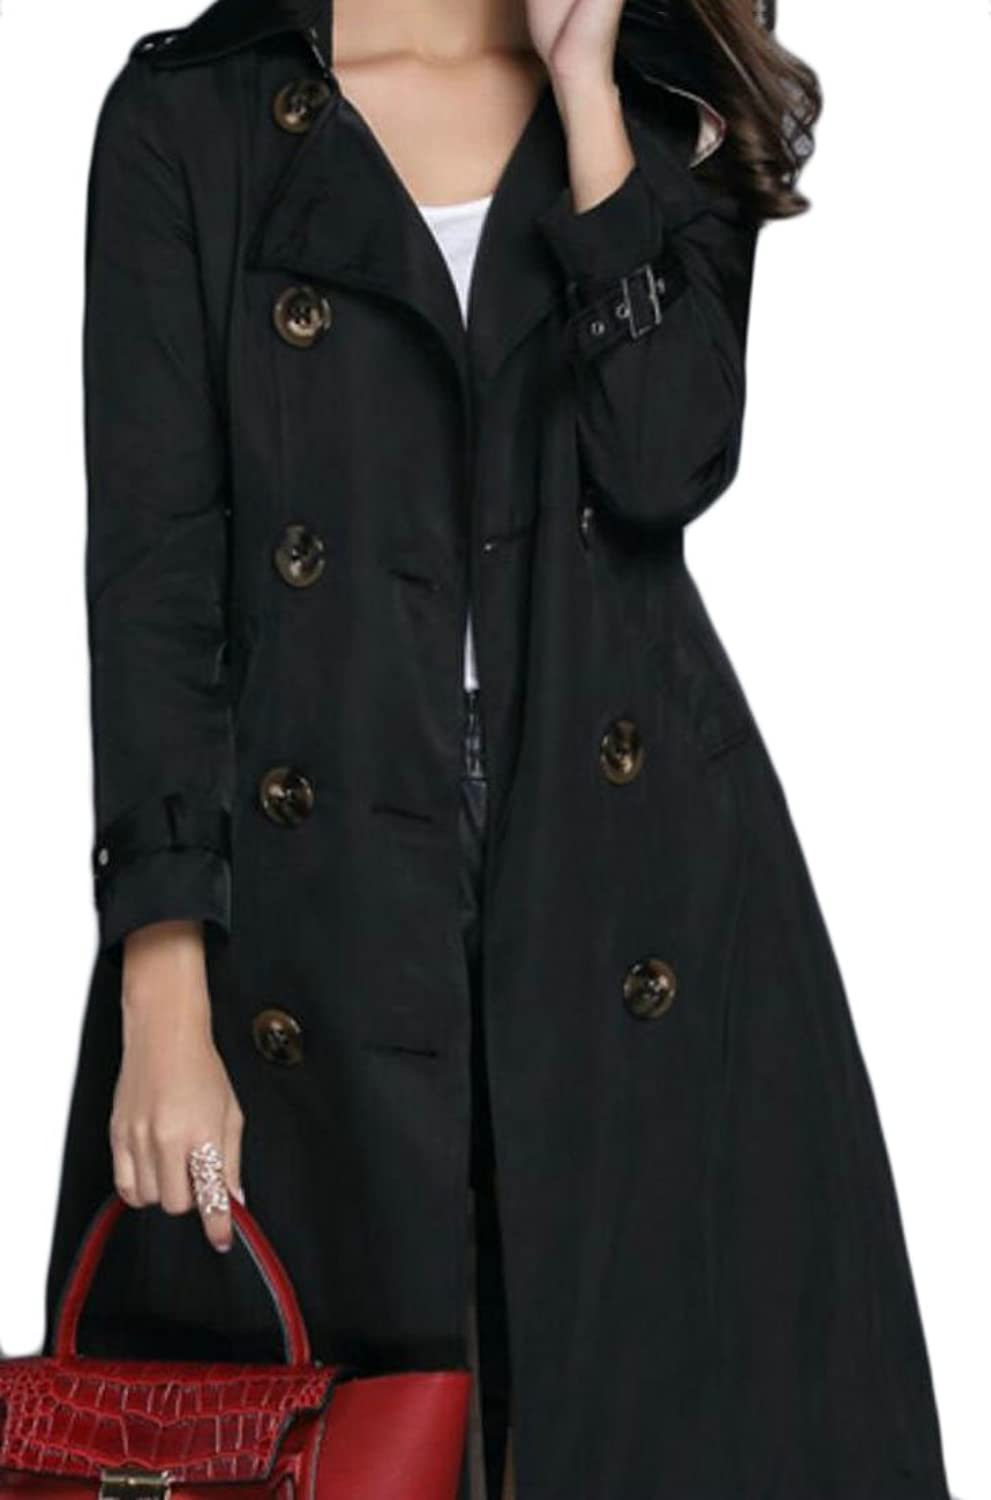 GAGA Women's Winter Outdoor Double Breasted Long Trench Pea Coat Jacket